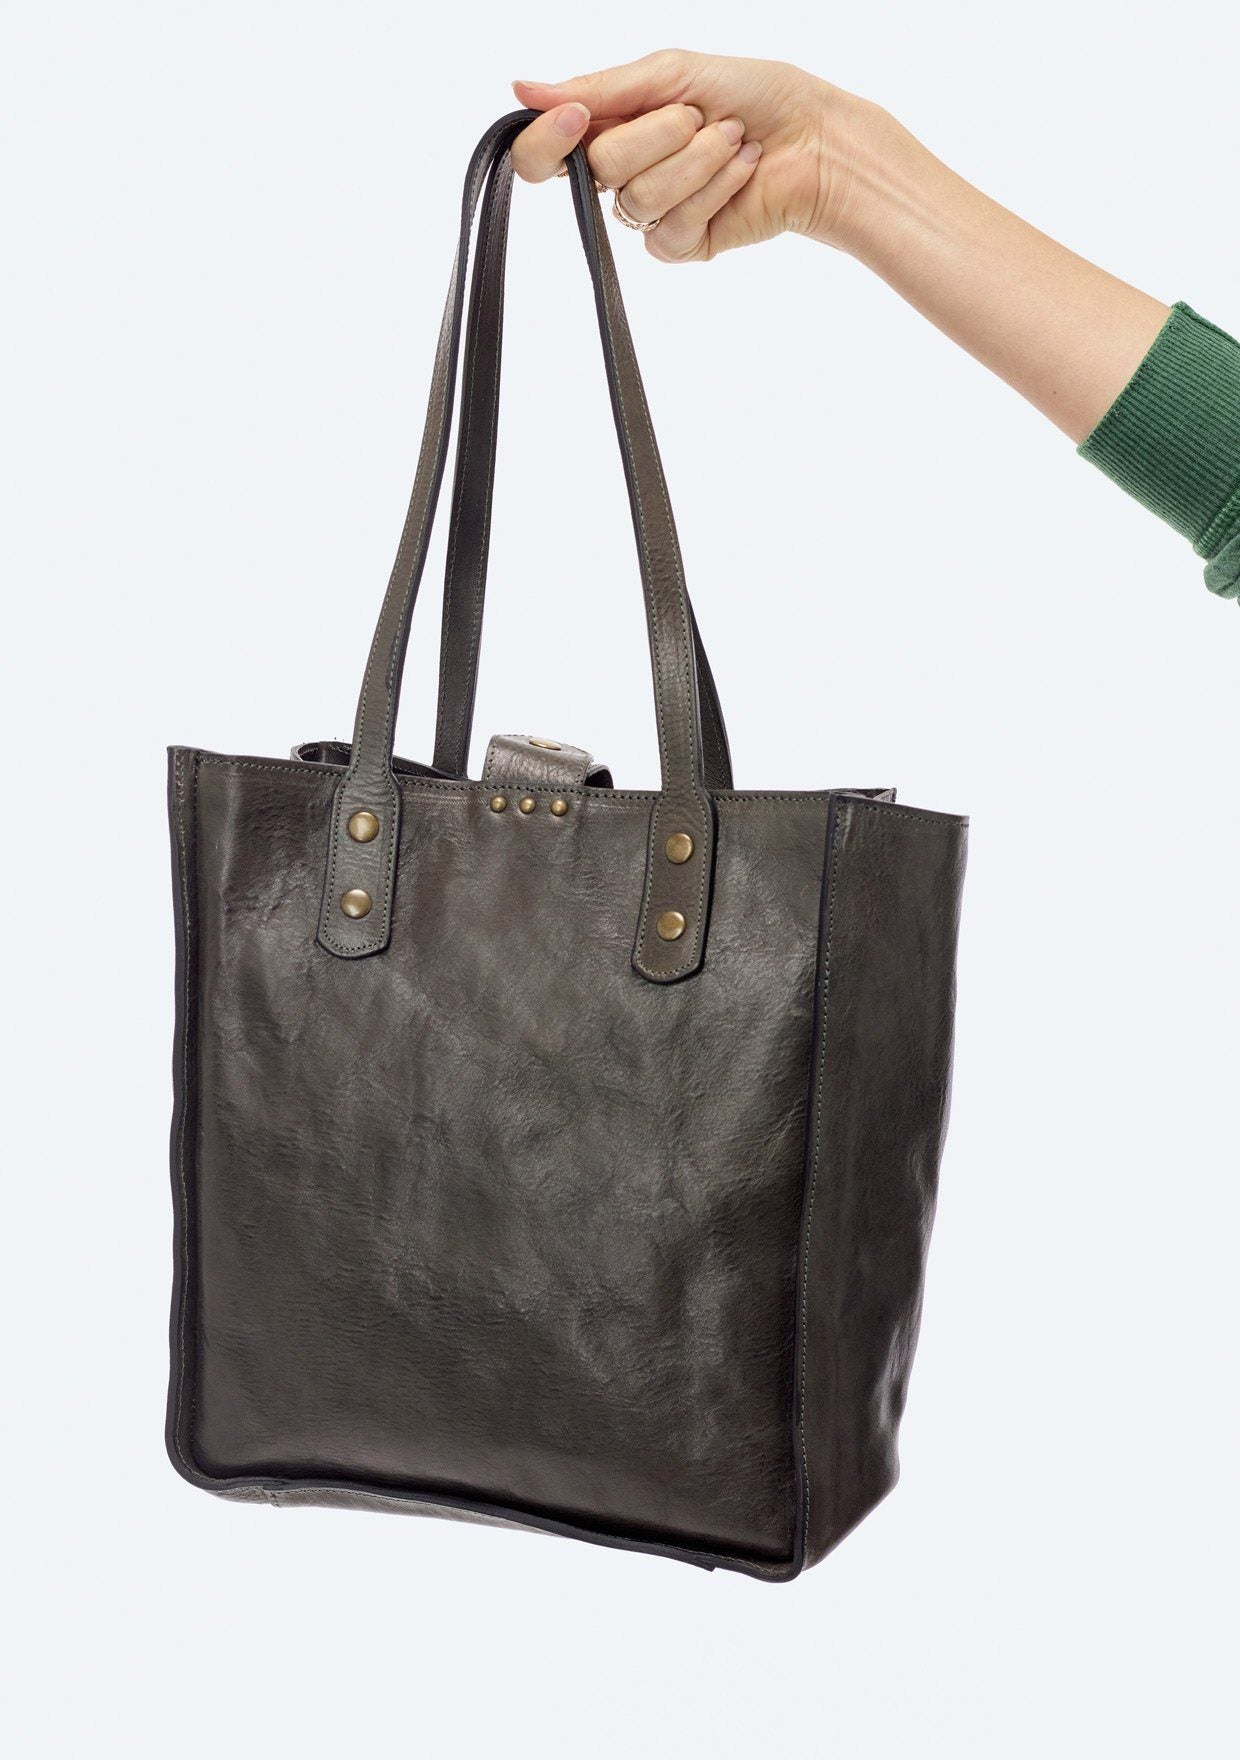 [Color: Olive] Lovestitch buttery soft leather small tote bag with handles and shoulder strap